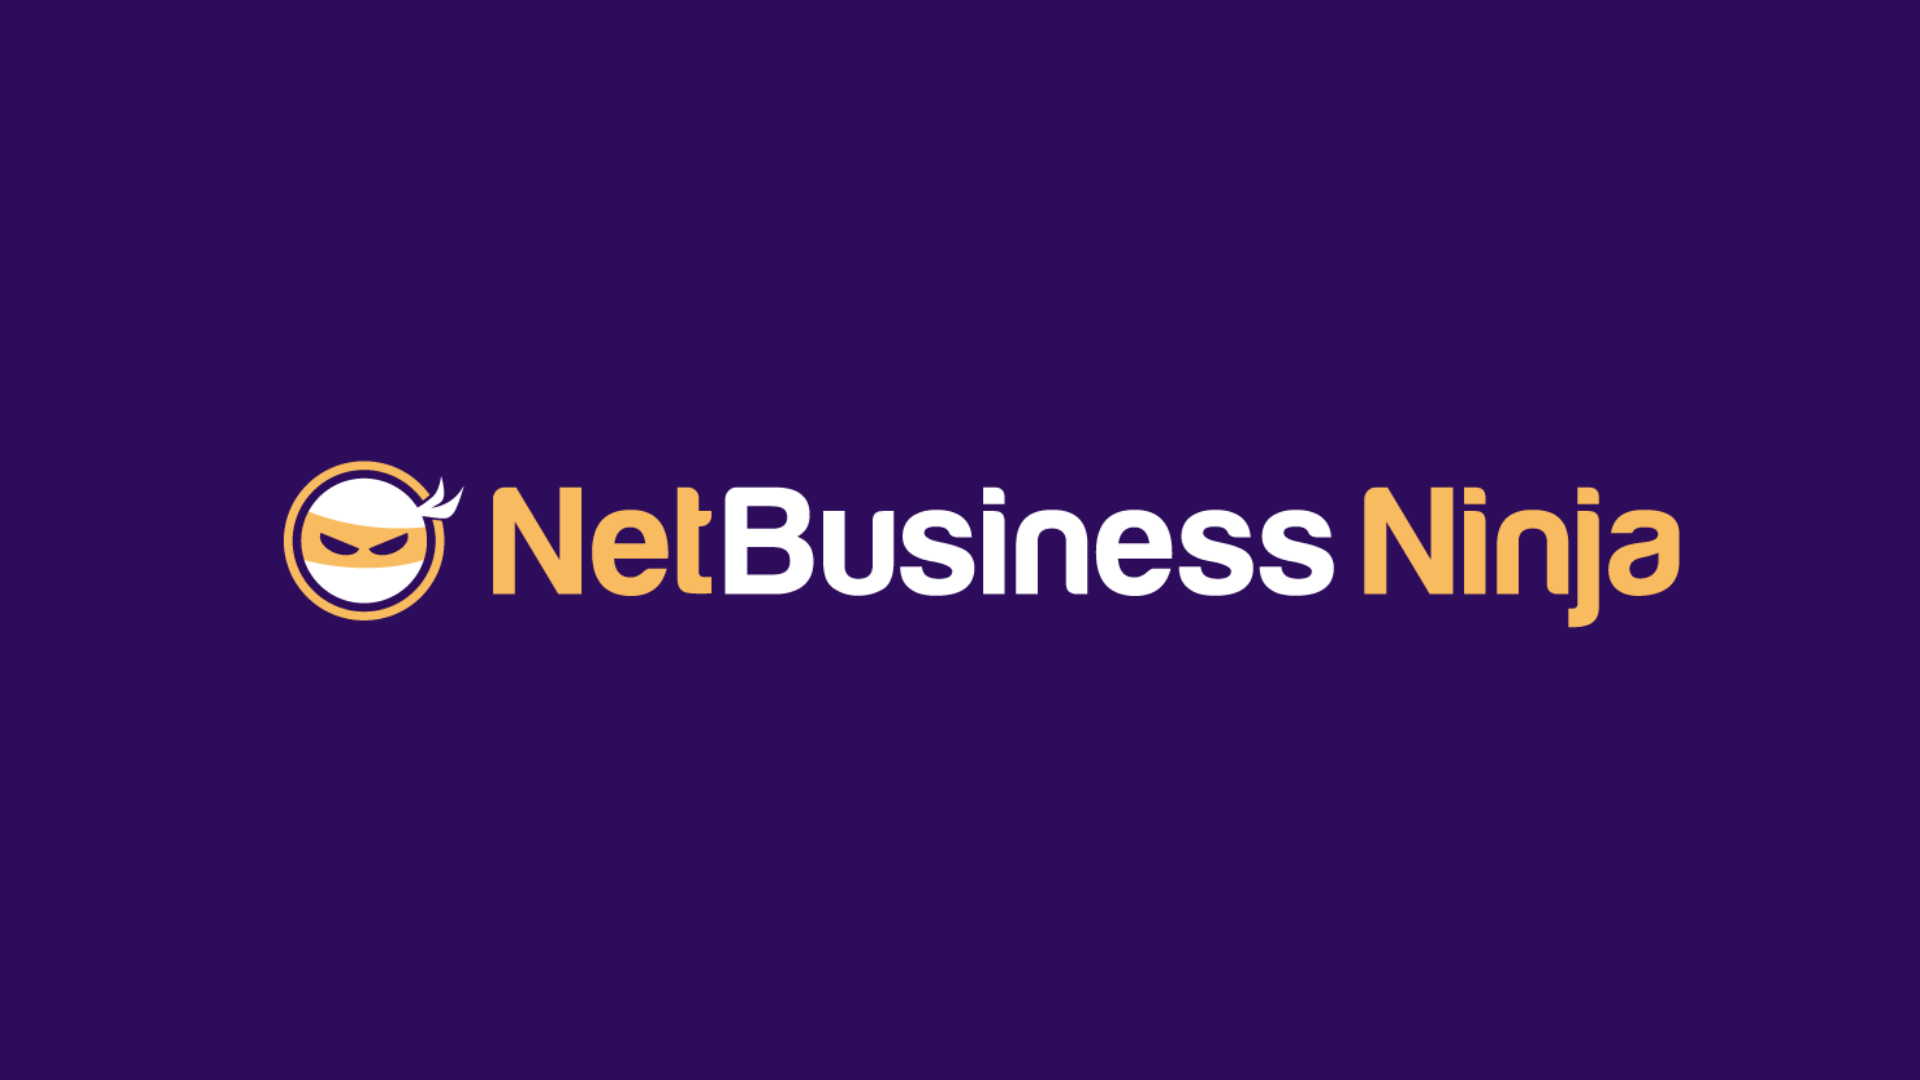 Miniature NetBusiness Ninja